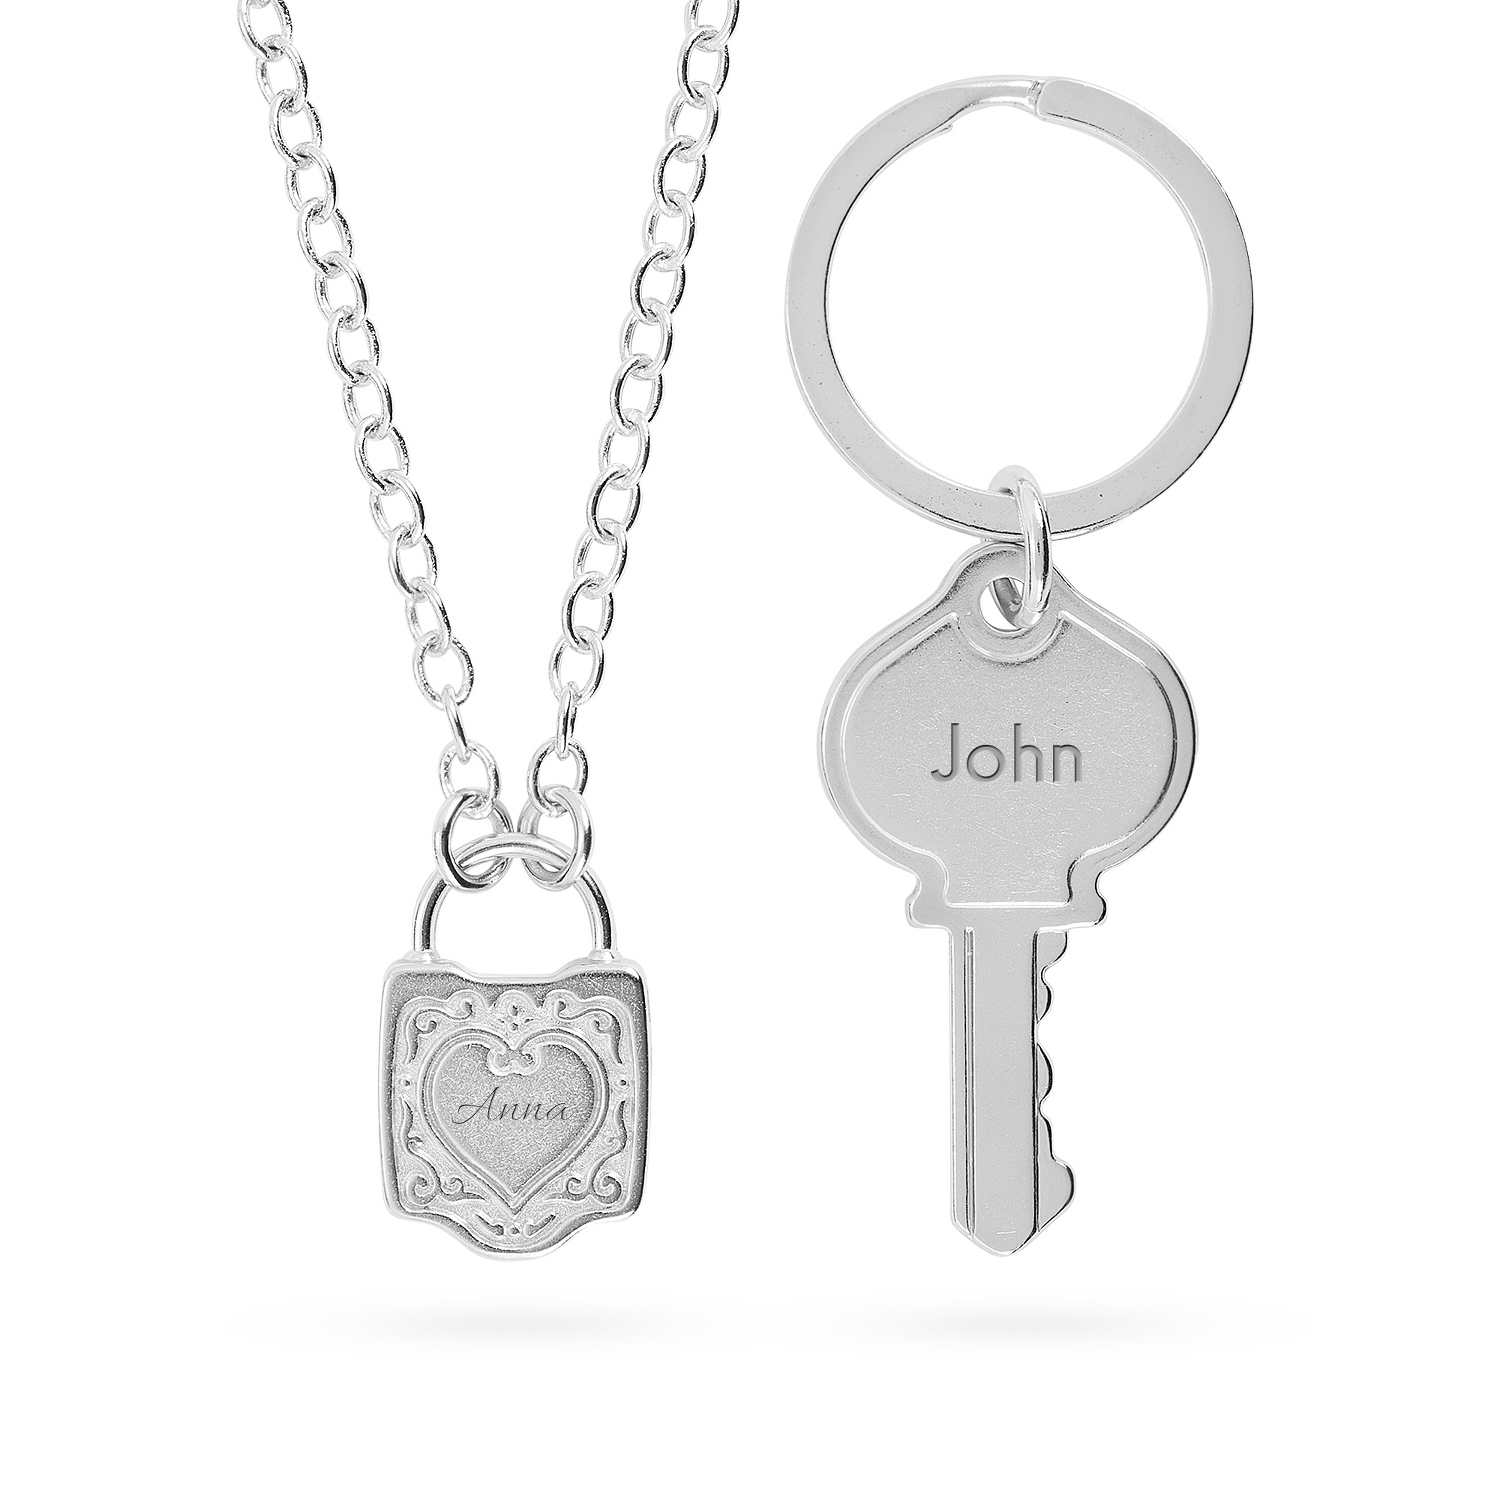 eb048465b07d1 Personalized Love Lock Set with Pendant and Key Chain